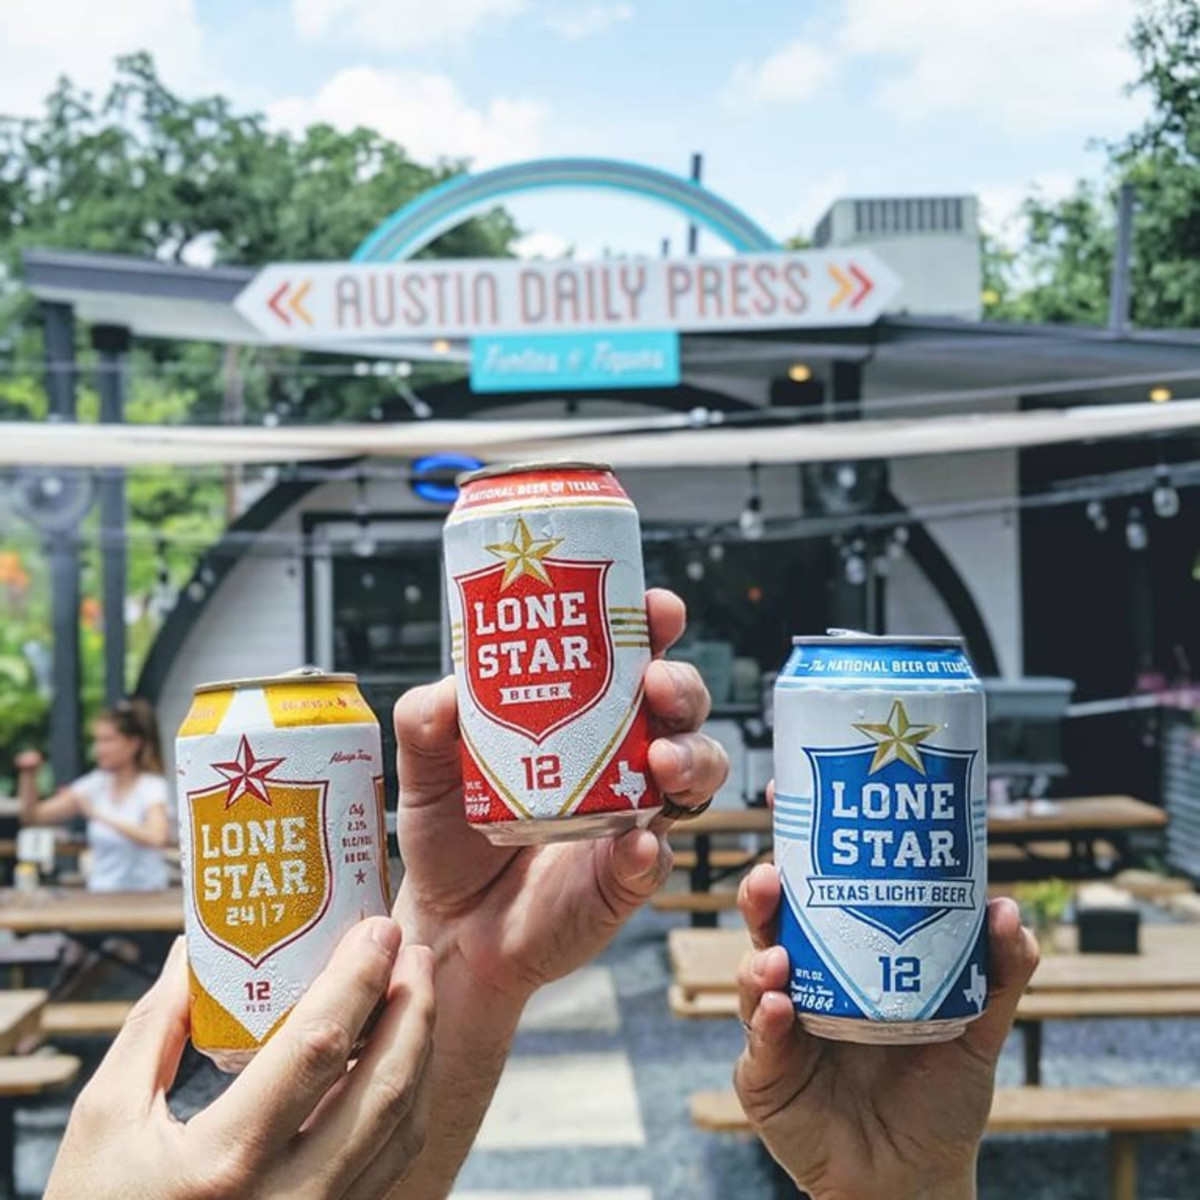 Austin Daily Press cheers with colorful beers